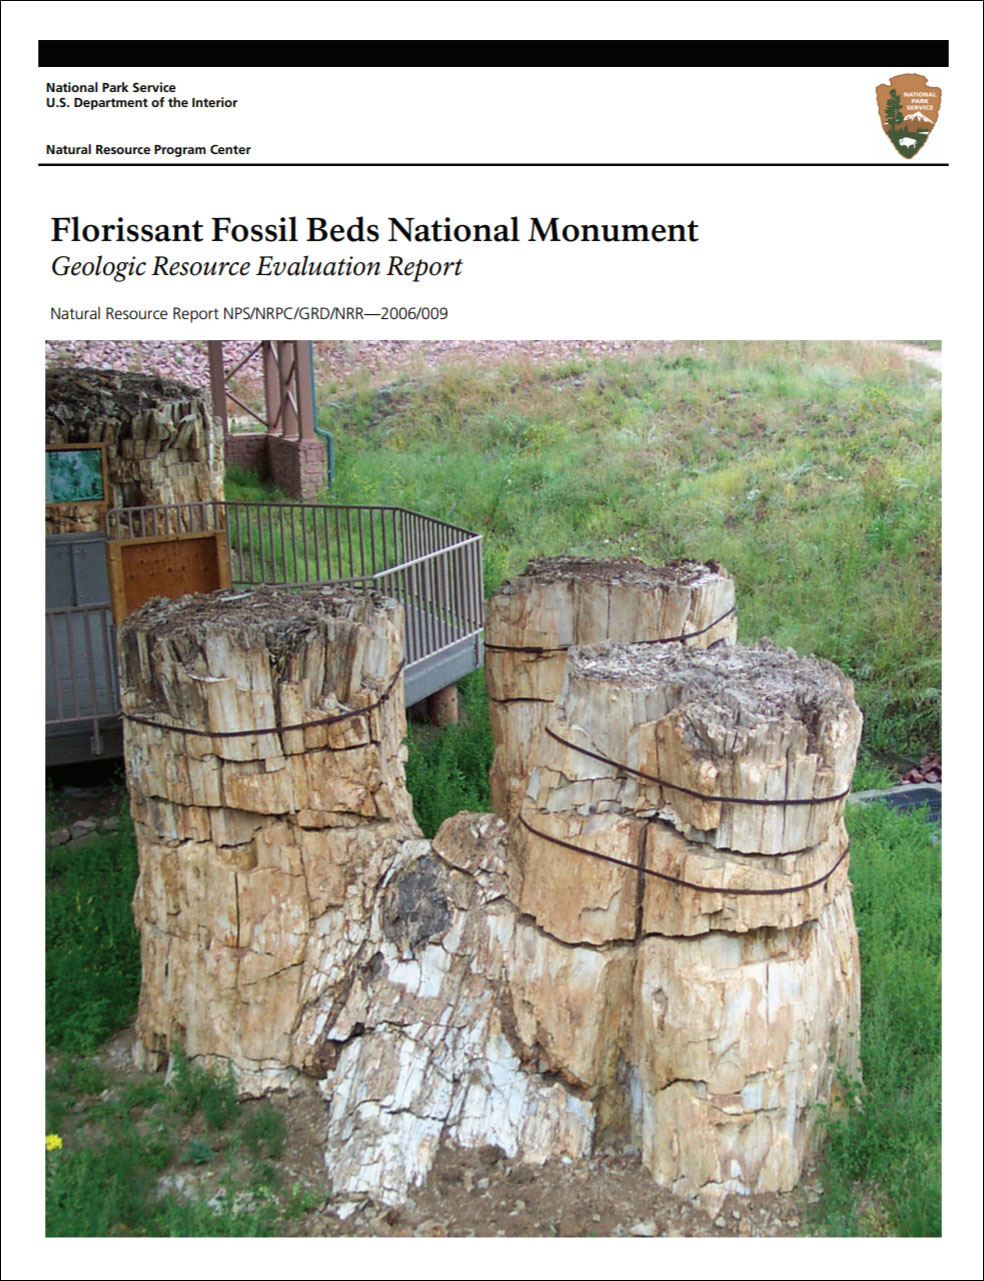 Best Trails in Florissant Fossil Beds National Monument